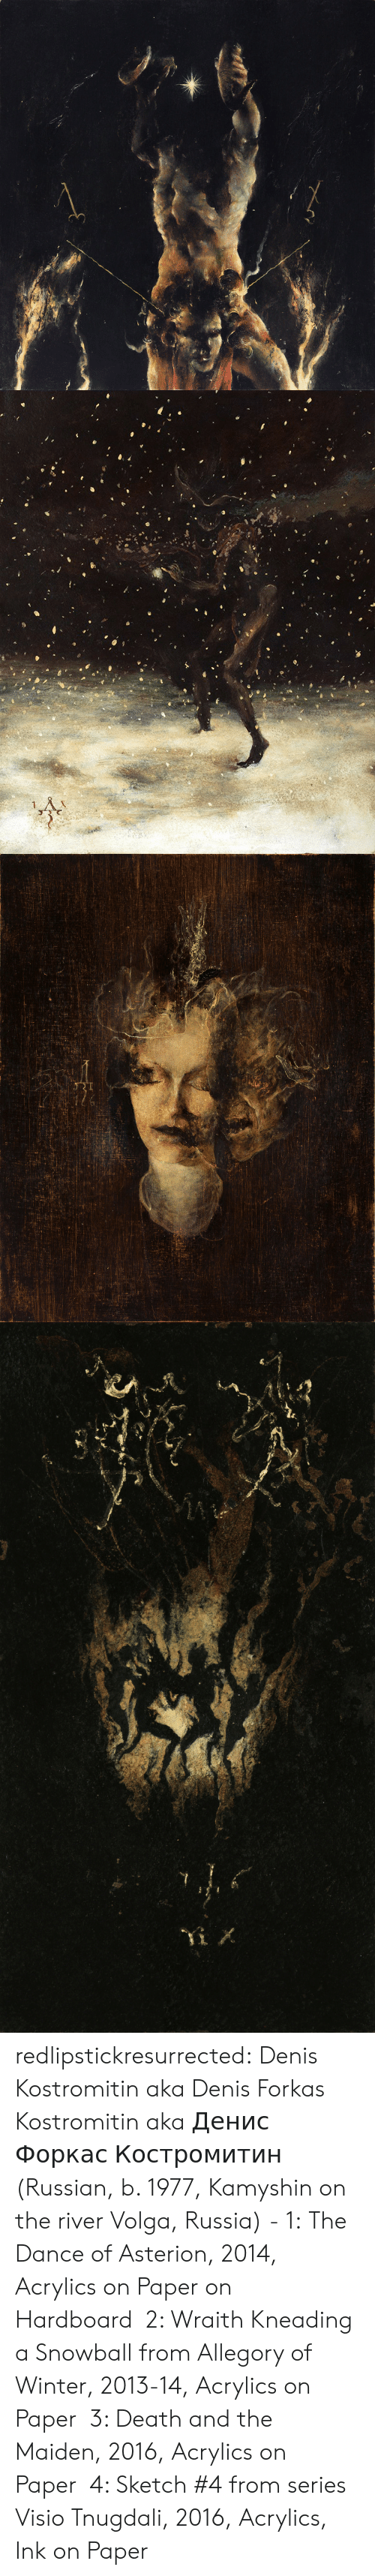 Tumblr, Winter, and Blog: redlipstickresurrected:  Denis Kostromitin aka Denis Forkas Kostromitin aka Денис Форкас Костромитин (Russian, b. 1977, Kamyshin on the river Volga, Russia) - 1:  The Dance of Asterion, 2014, Acrylics on Paper on Hardboard 2: Wraith Kneading a Snowball from Allegory of Winter, 2013-14, Acrylics on Paper 3: Death and the Maiden, 2016, Acrylics on Paper 4: Sketch #4 from series Visio Tnugdali, 2016, Acrylics, Ink on Paper